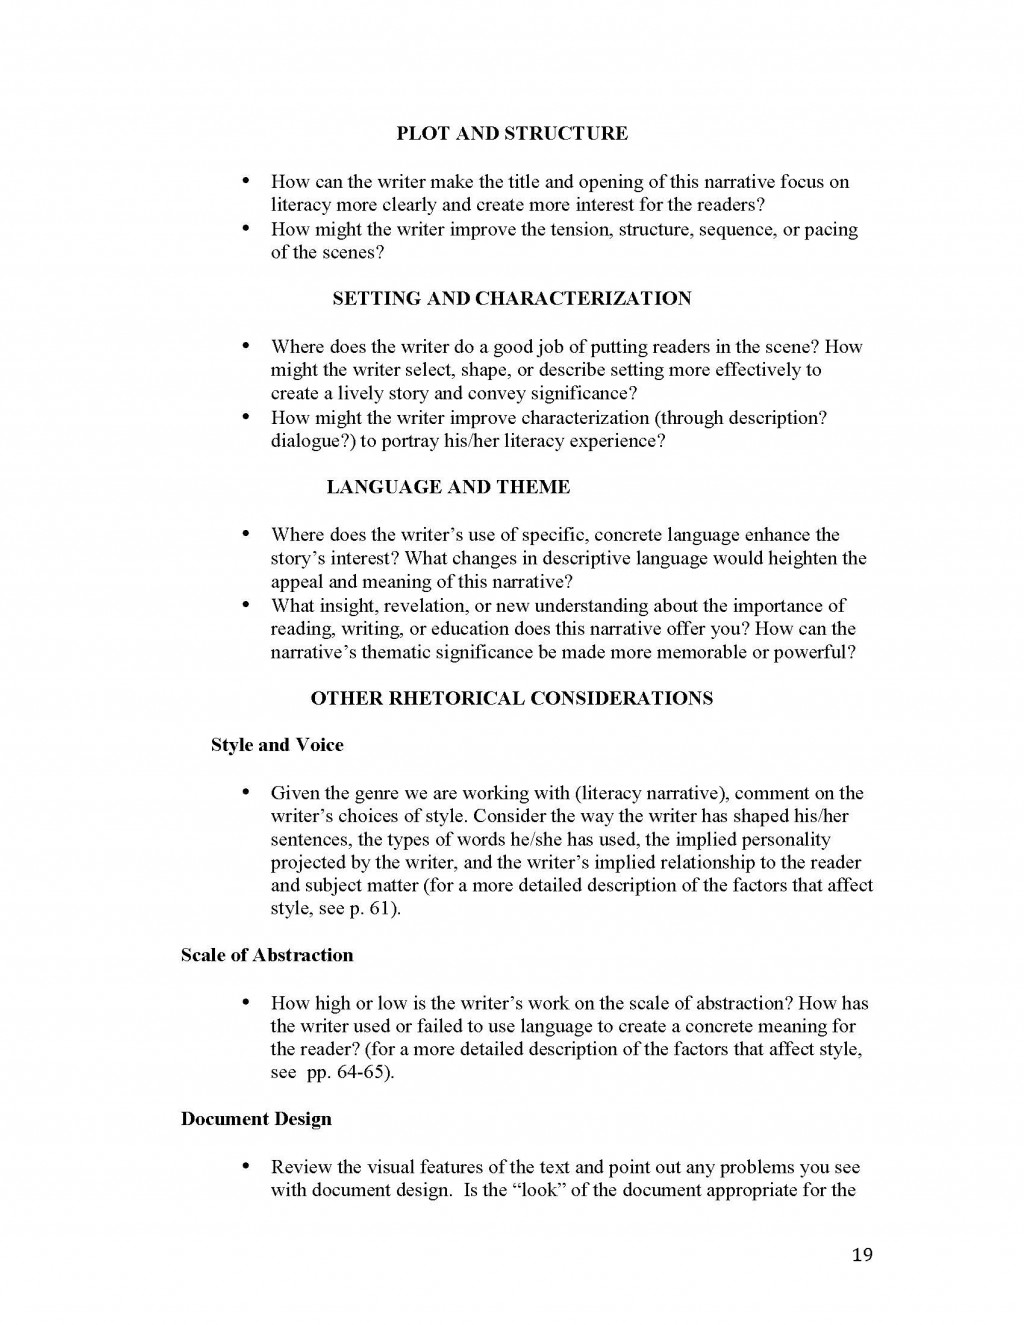 006 Unit 1 Literacy Narrative Instructor Copy Page 19 Argumentative Essay Definition Fearsome Wikipedia Define Format & Examples Large